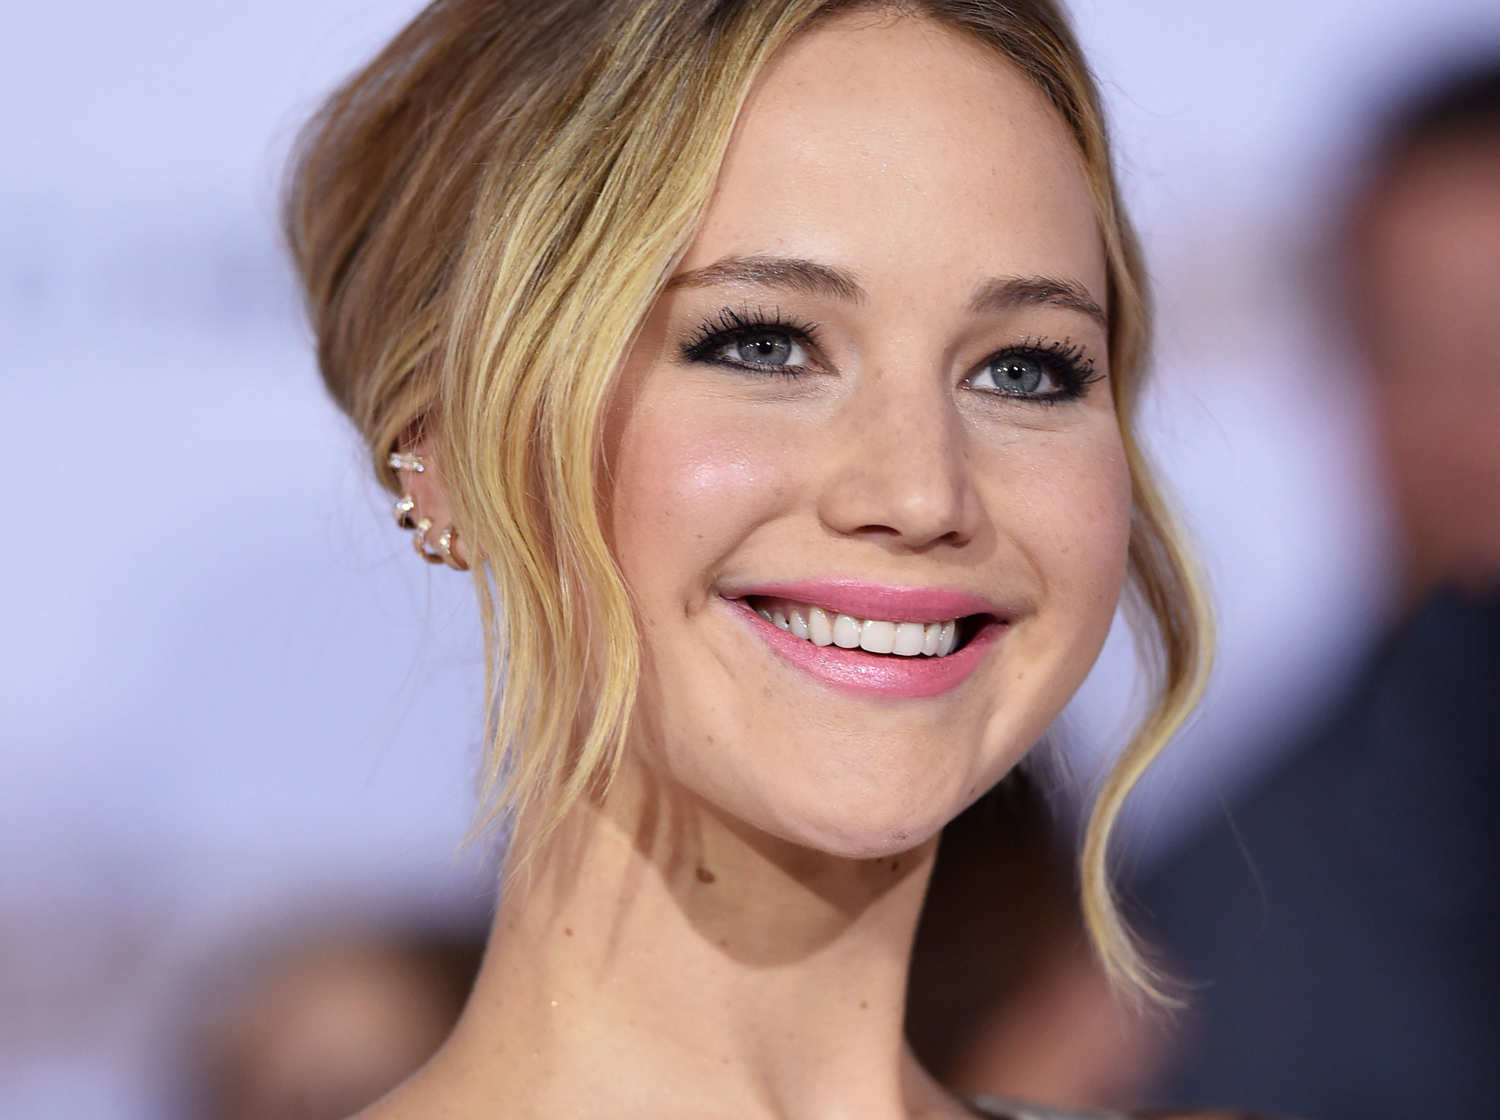 17-jennifer-lawrence-1_w750_h560_2x